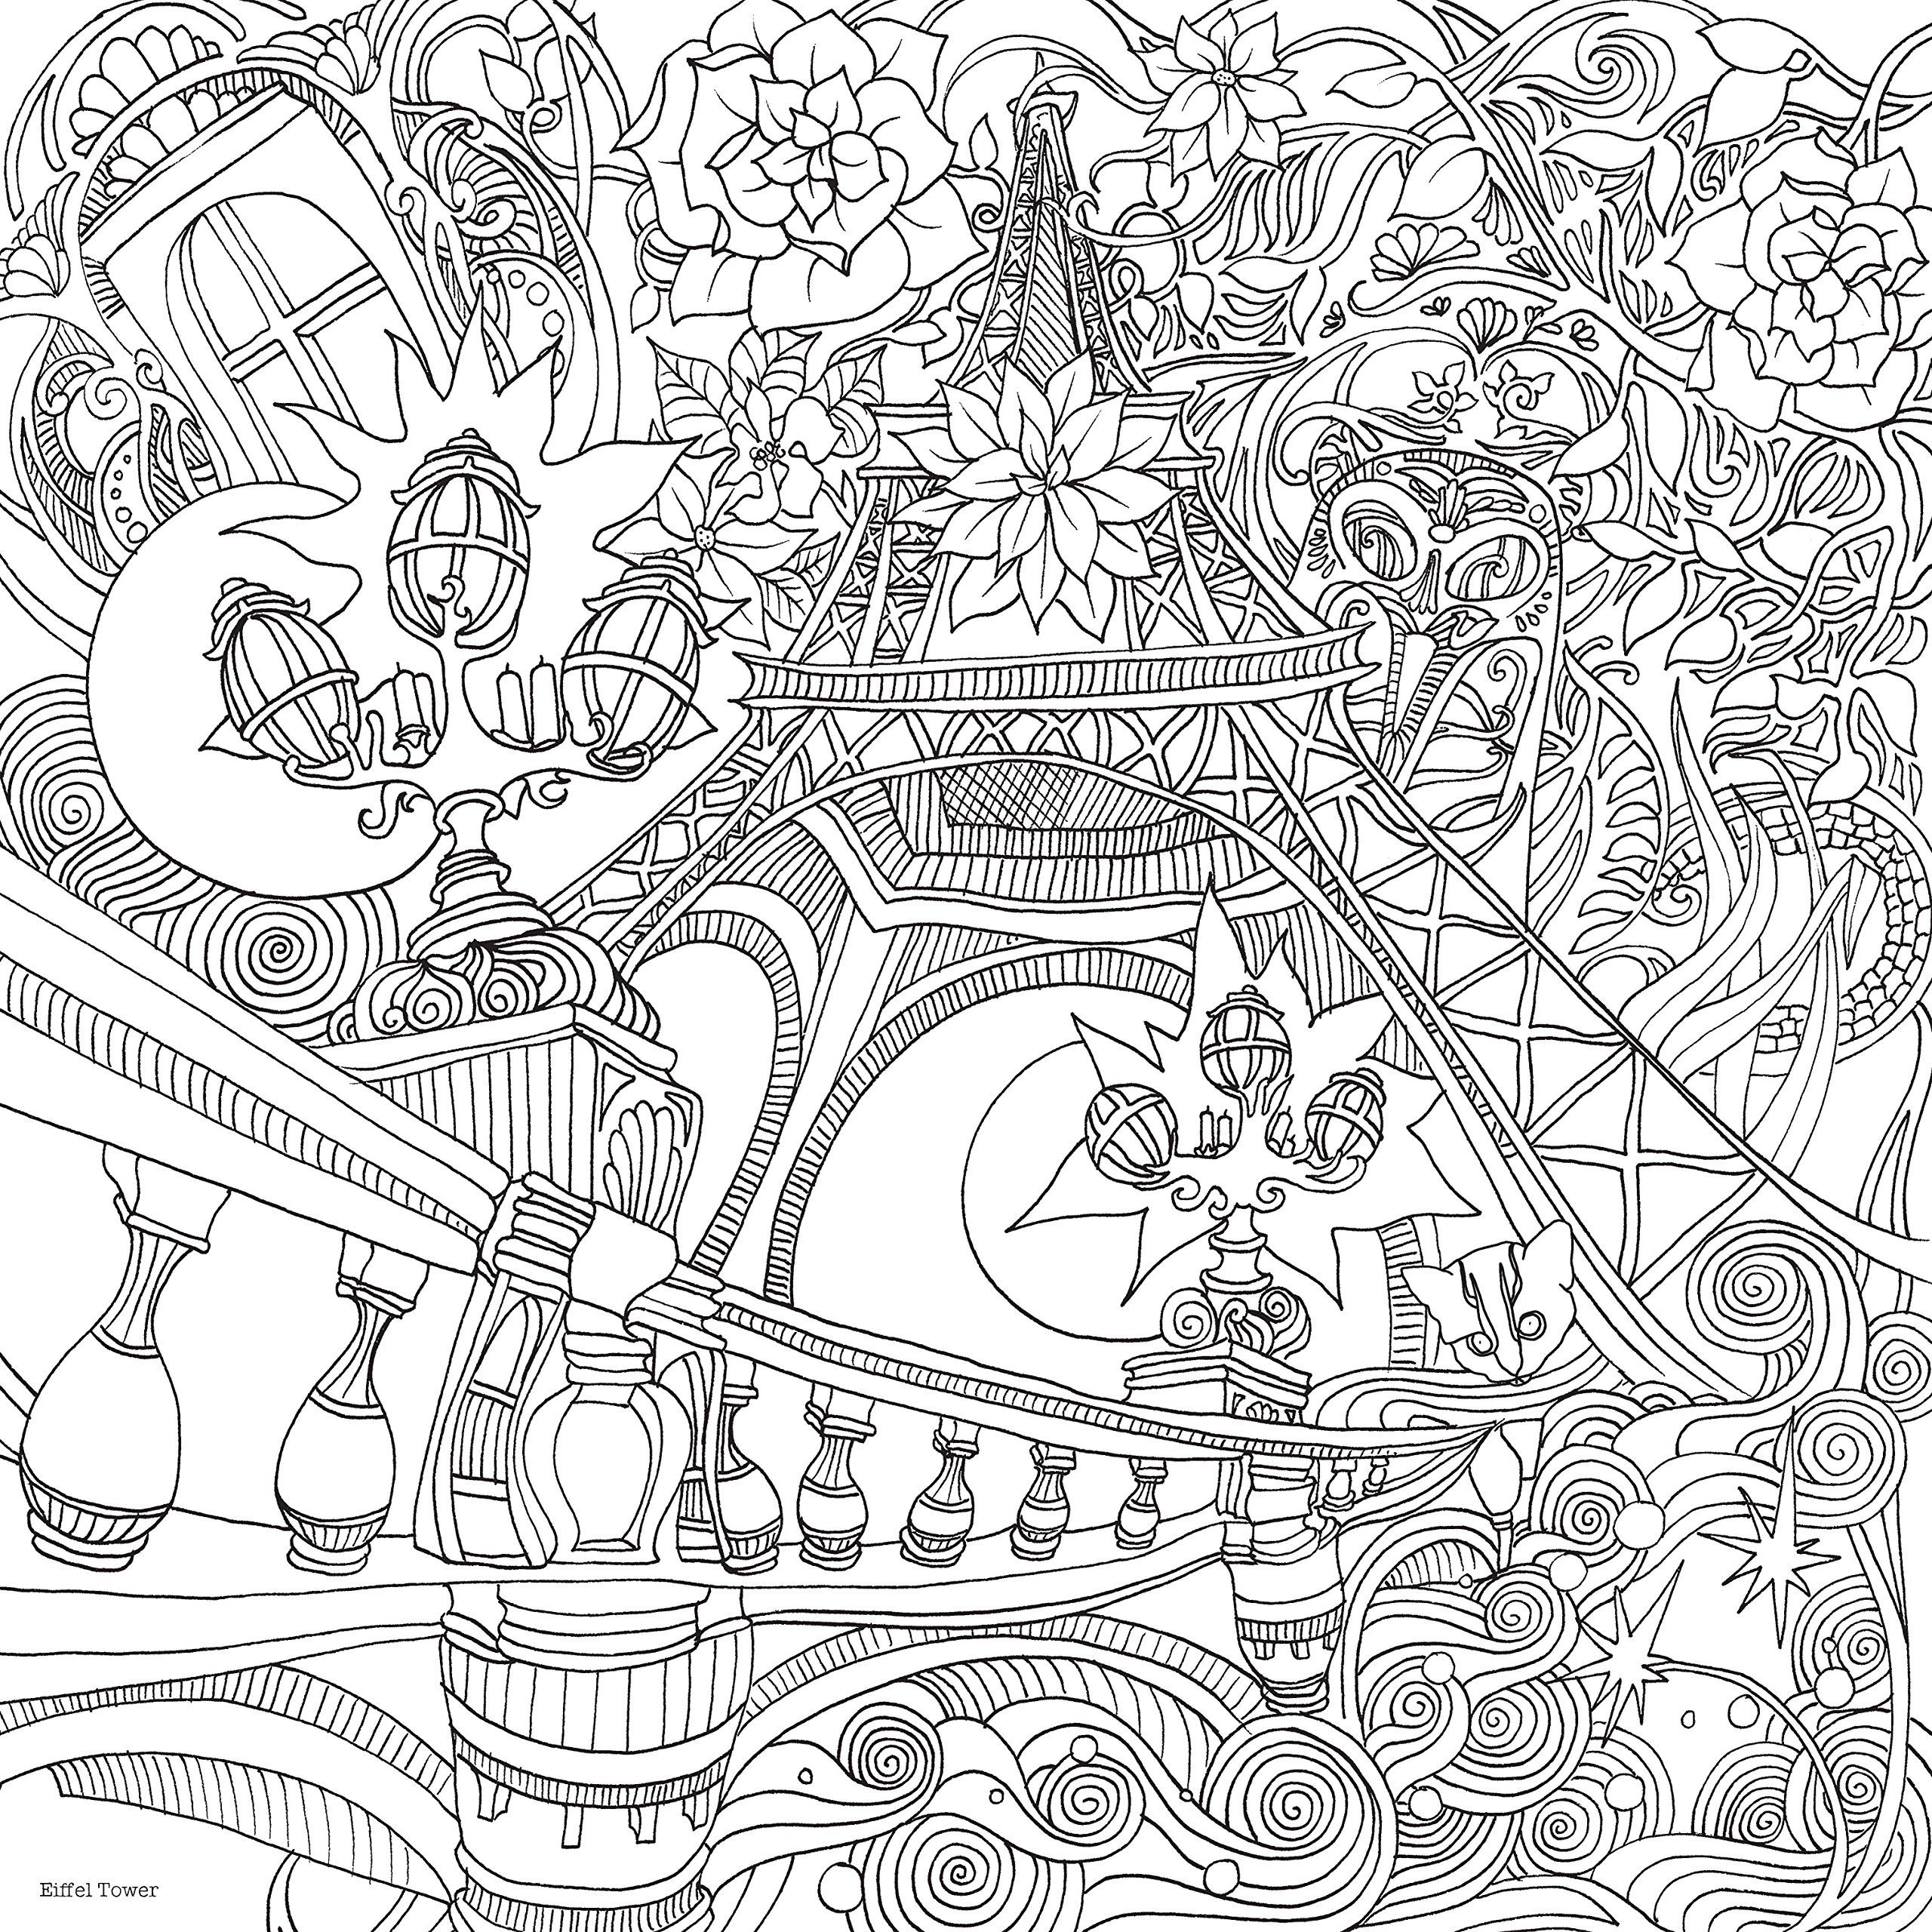 The Magical City A Colouring Book Magical Colouring